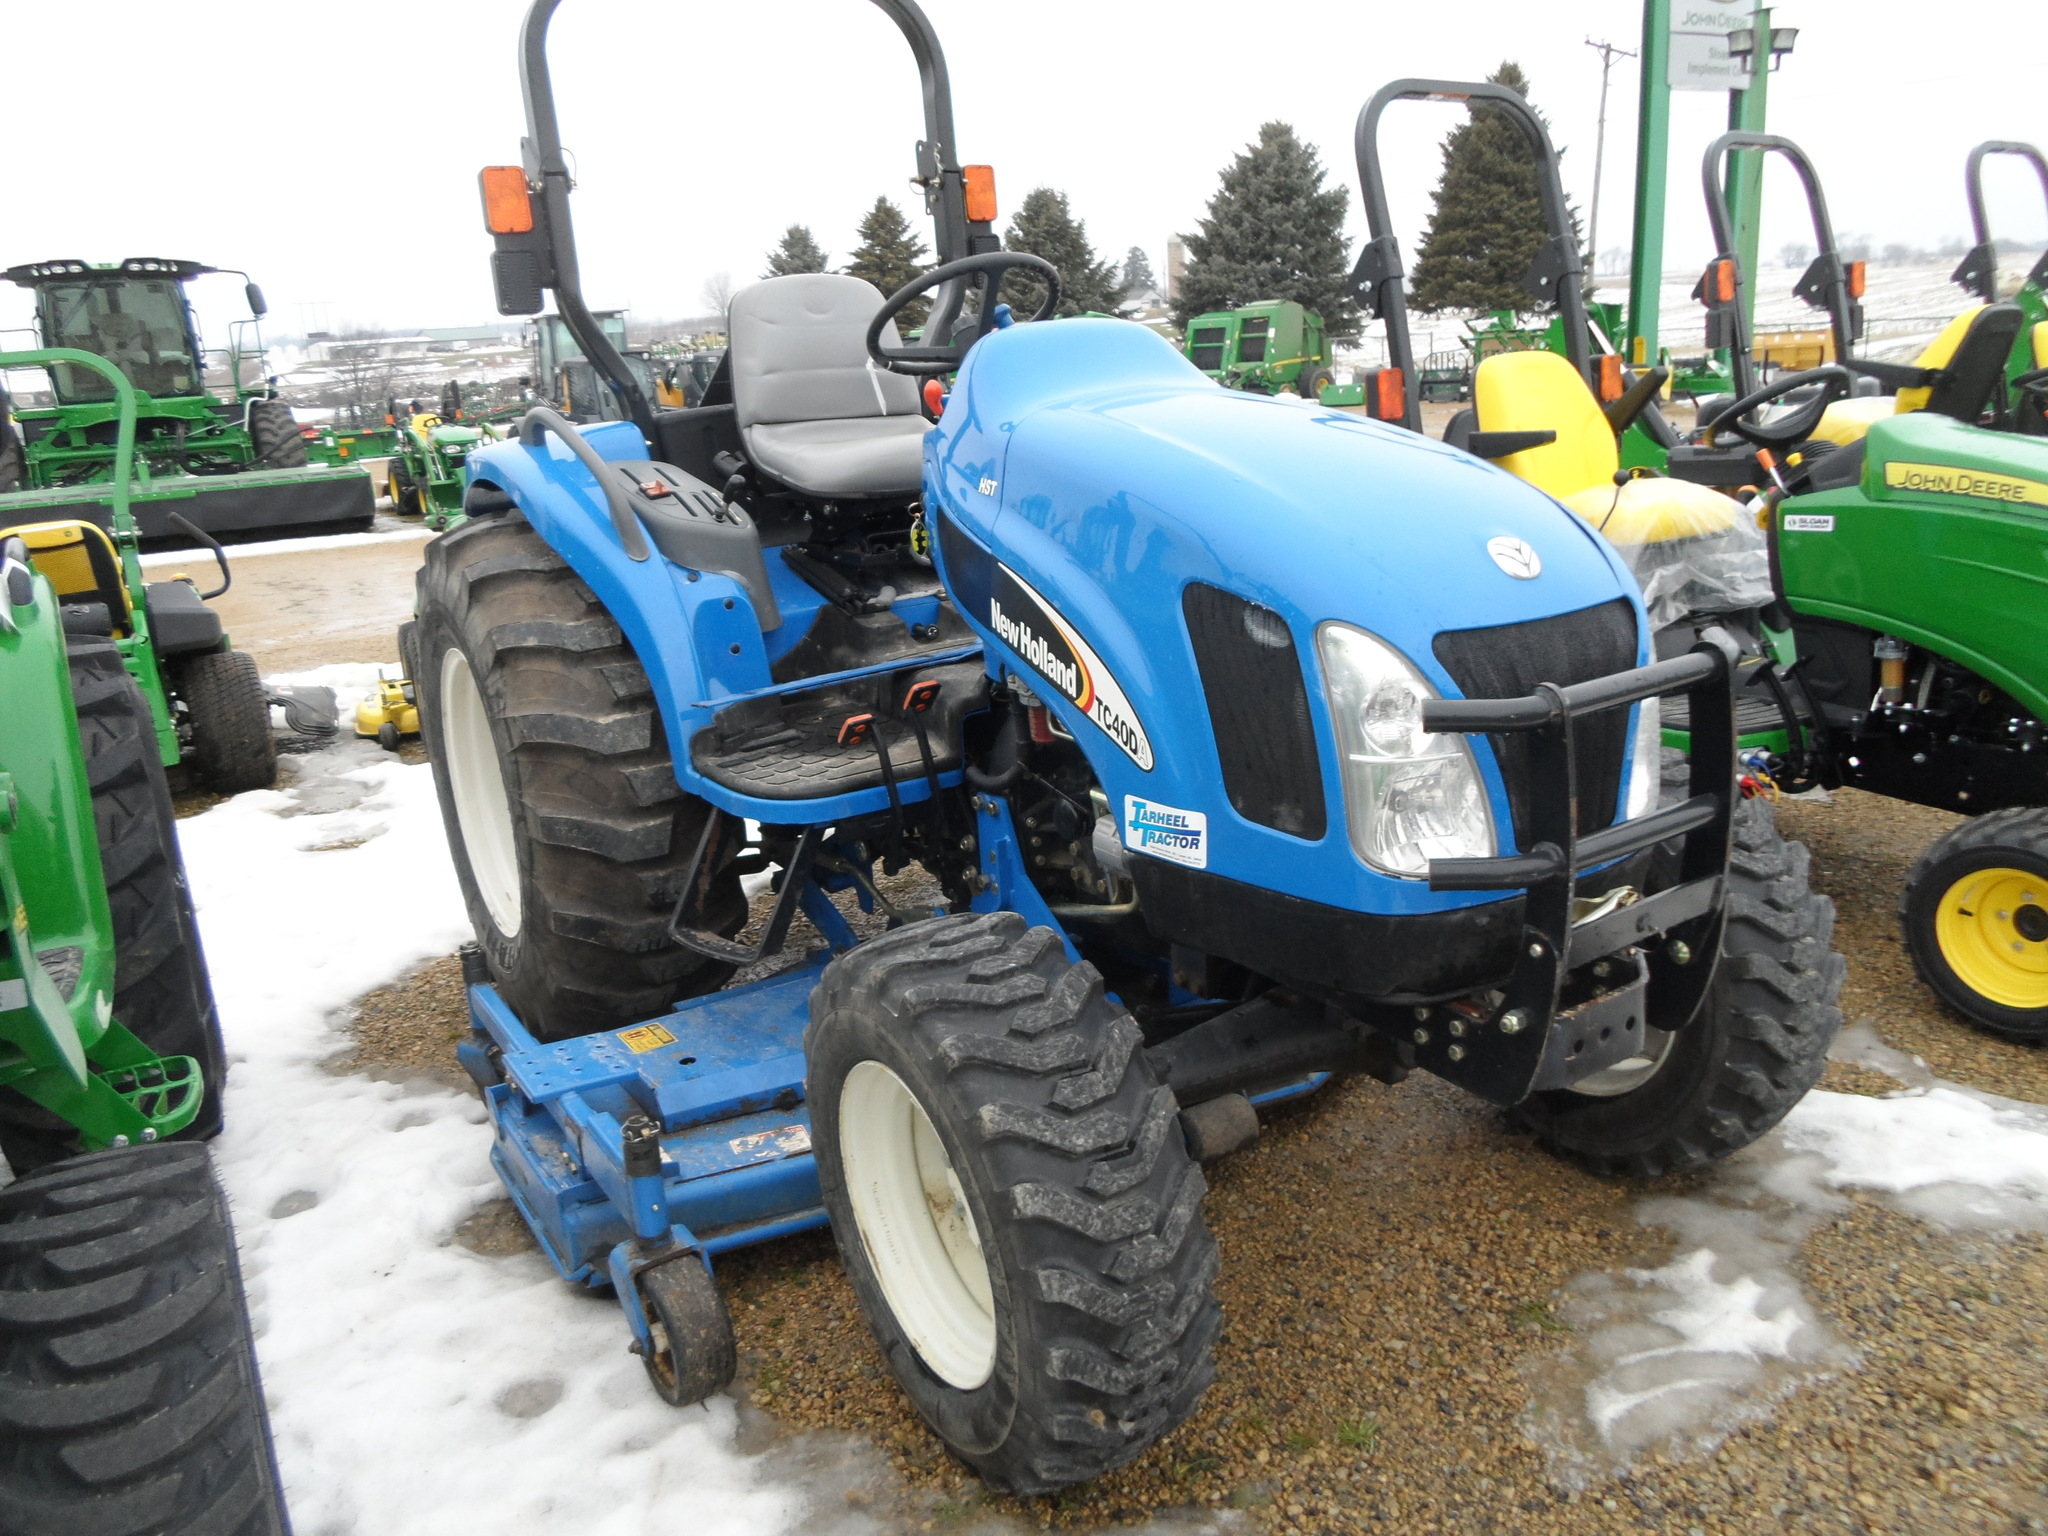 New Holland Compact Utility Tractor : New holland tc da compact utility tractors for sale